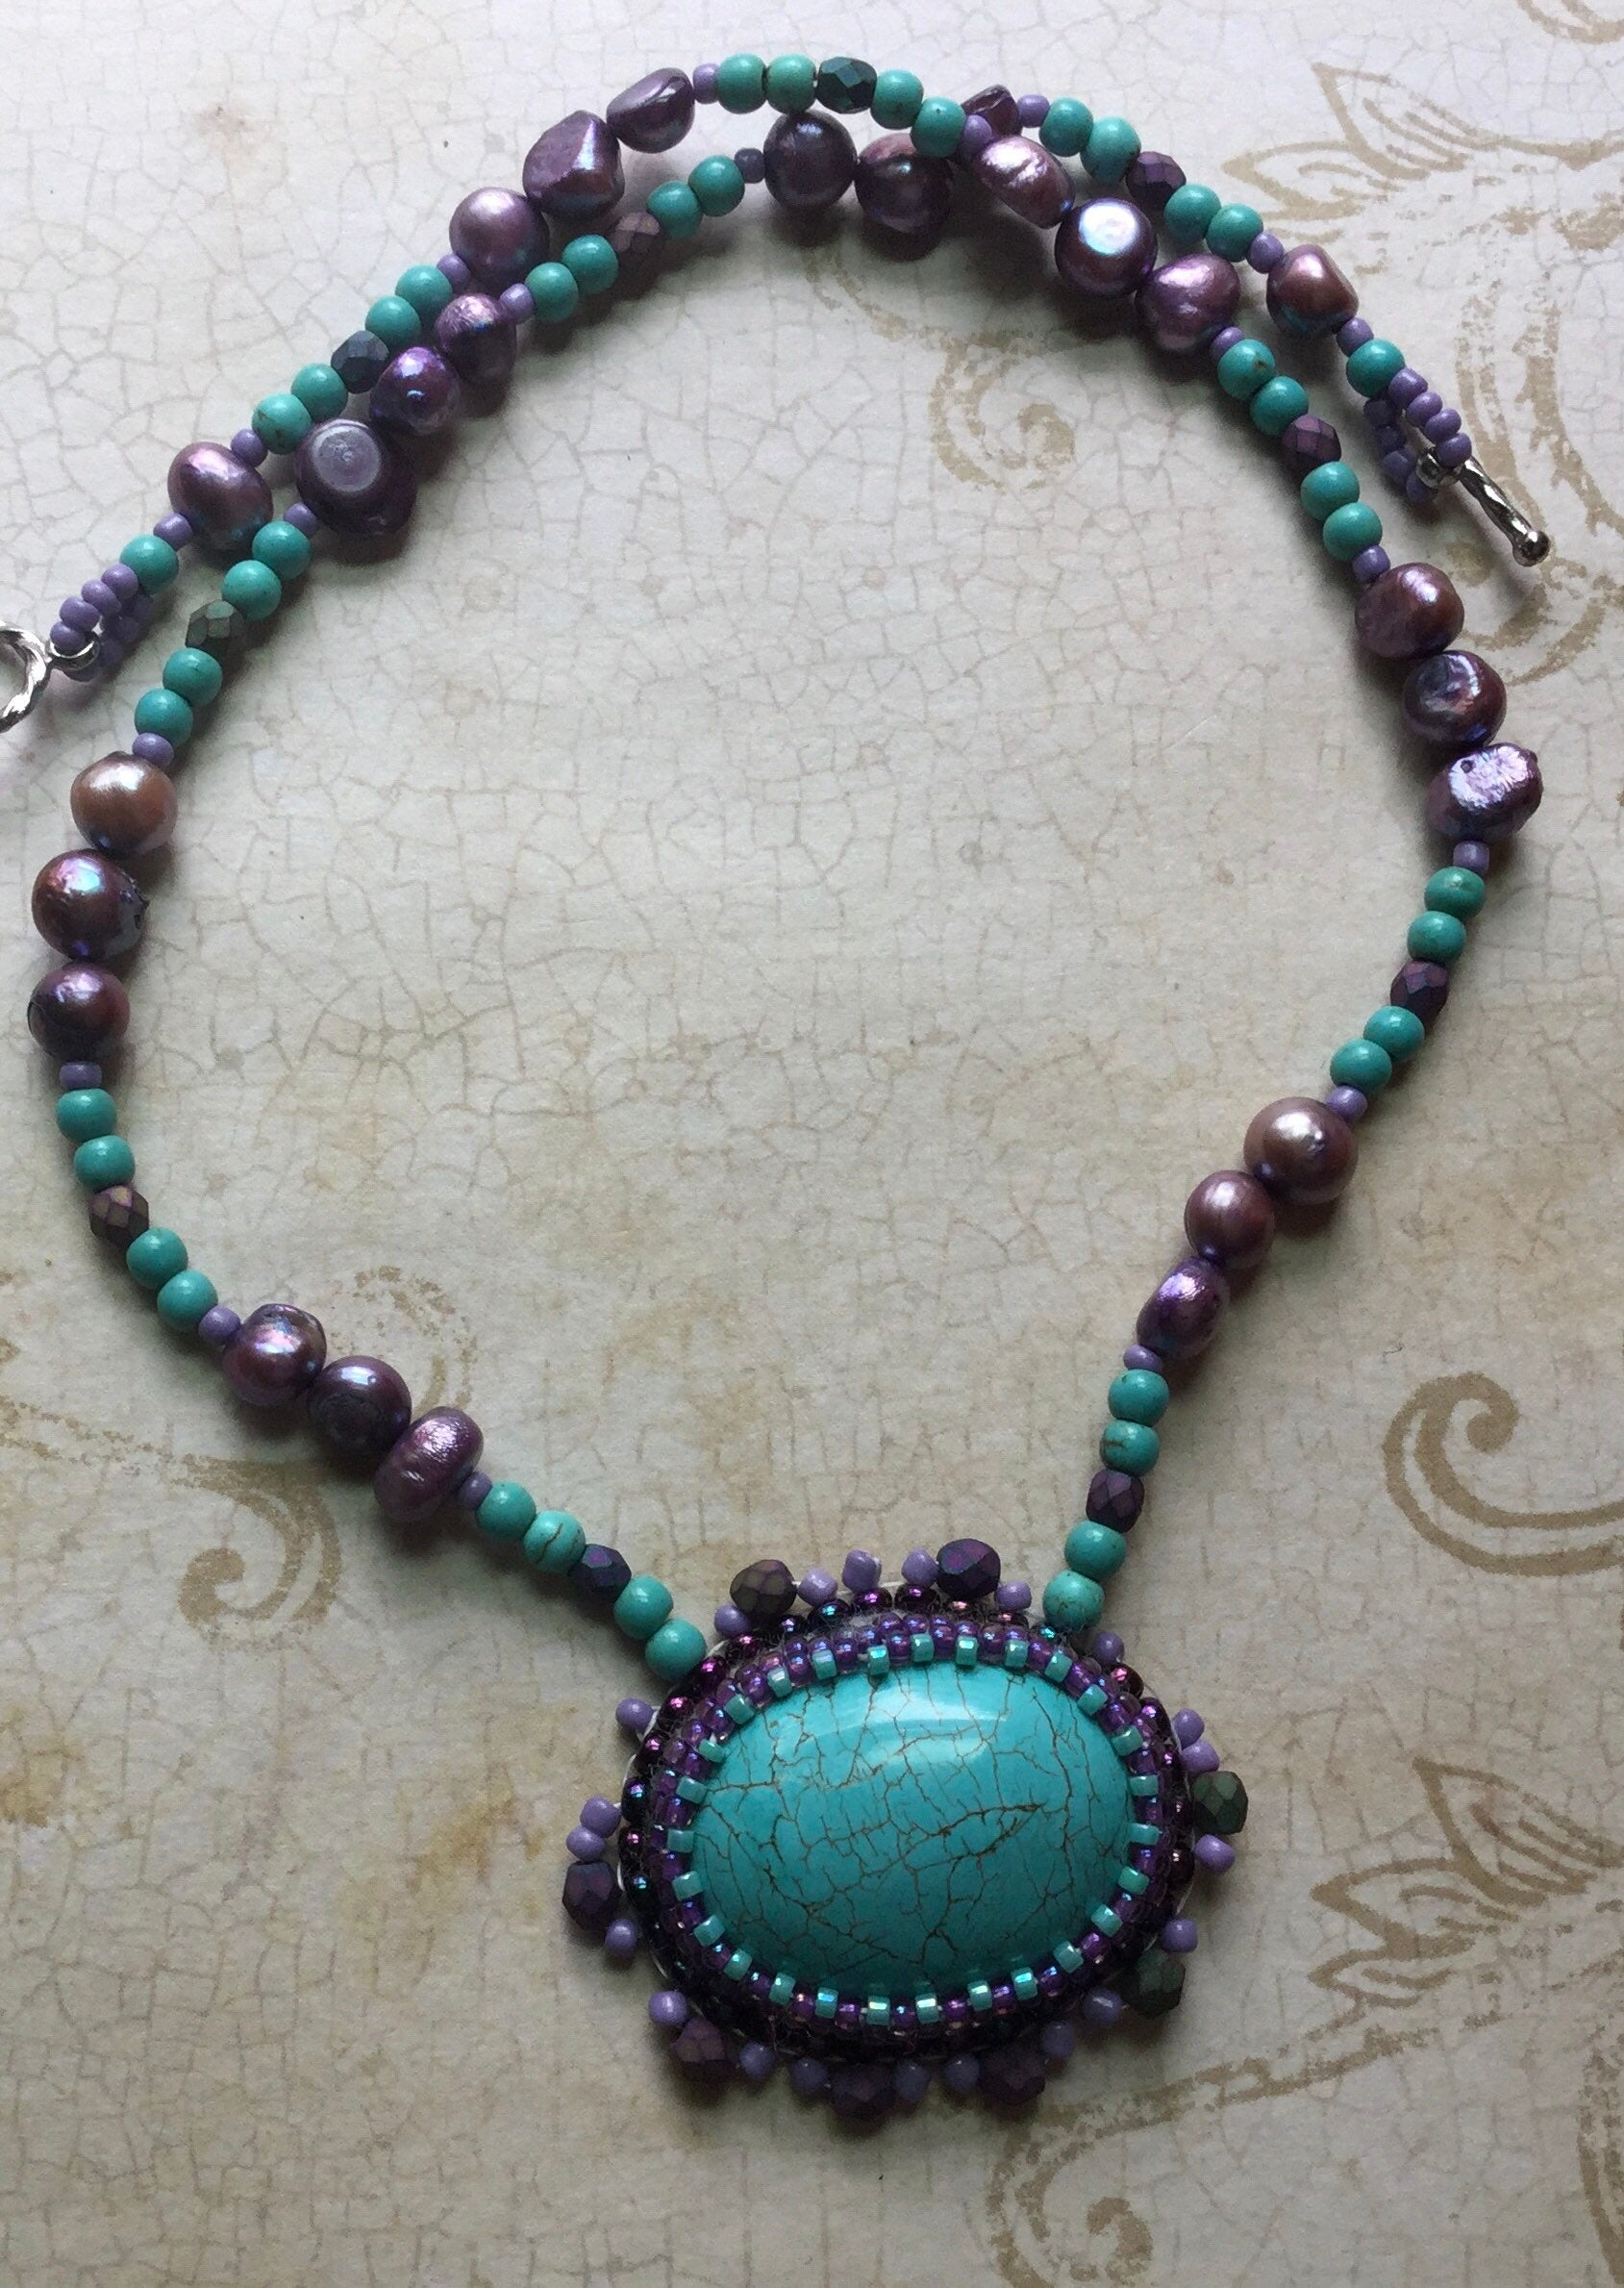 Turquoise and Pearl beaded pendant necklace